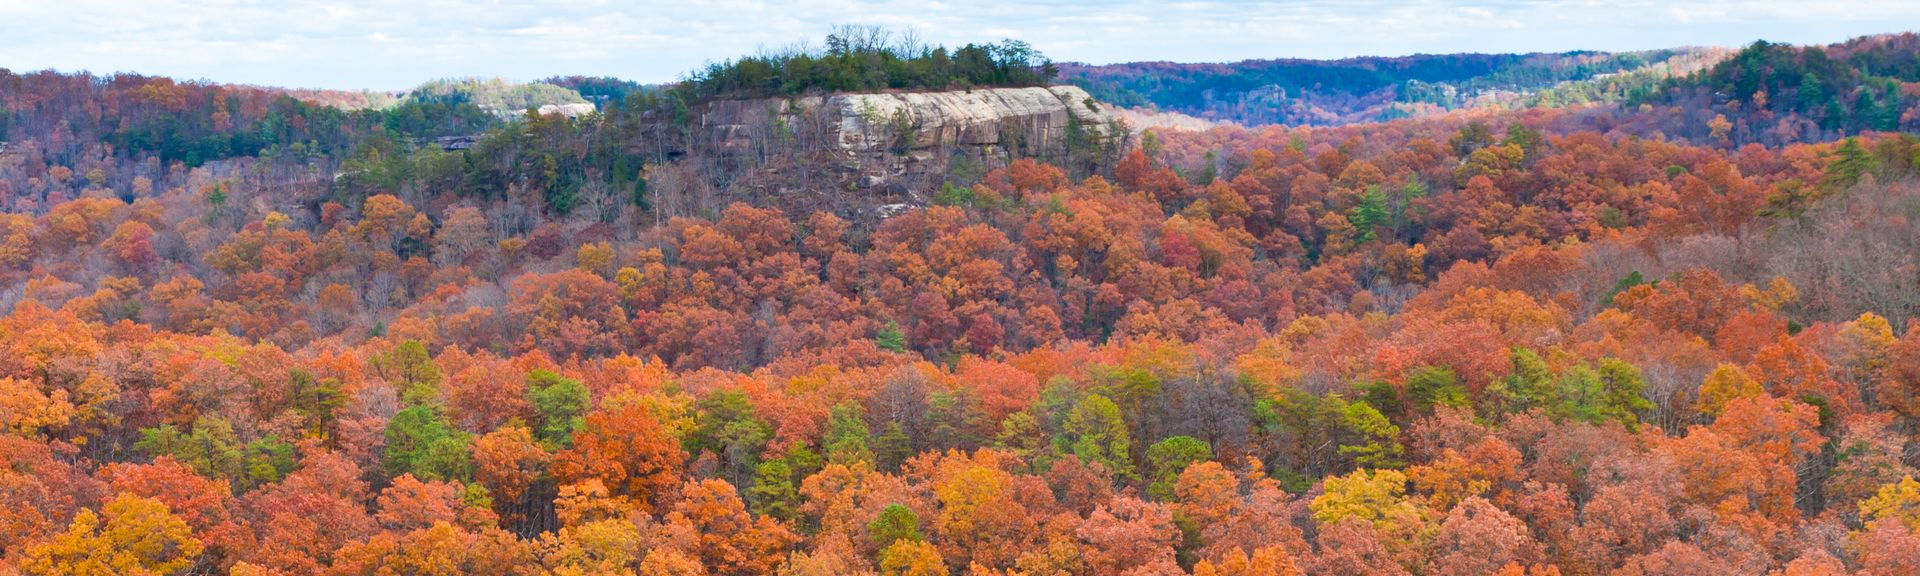 Red River Gorge, Stanton, Kentucky, United States of America